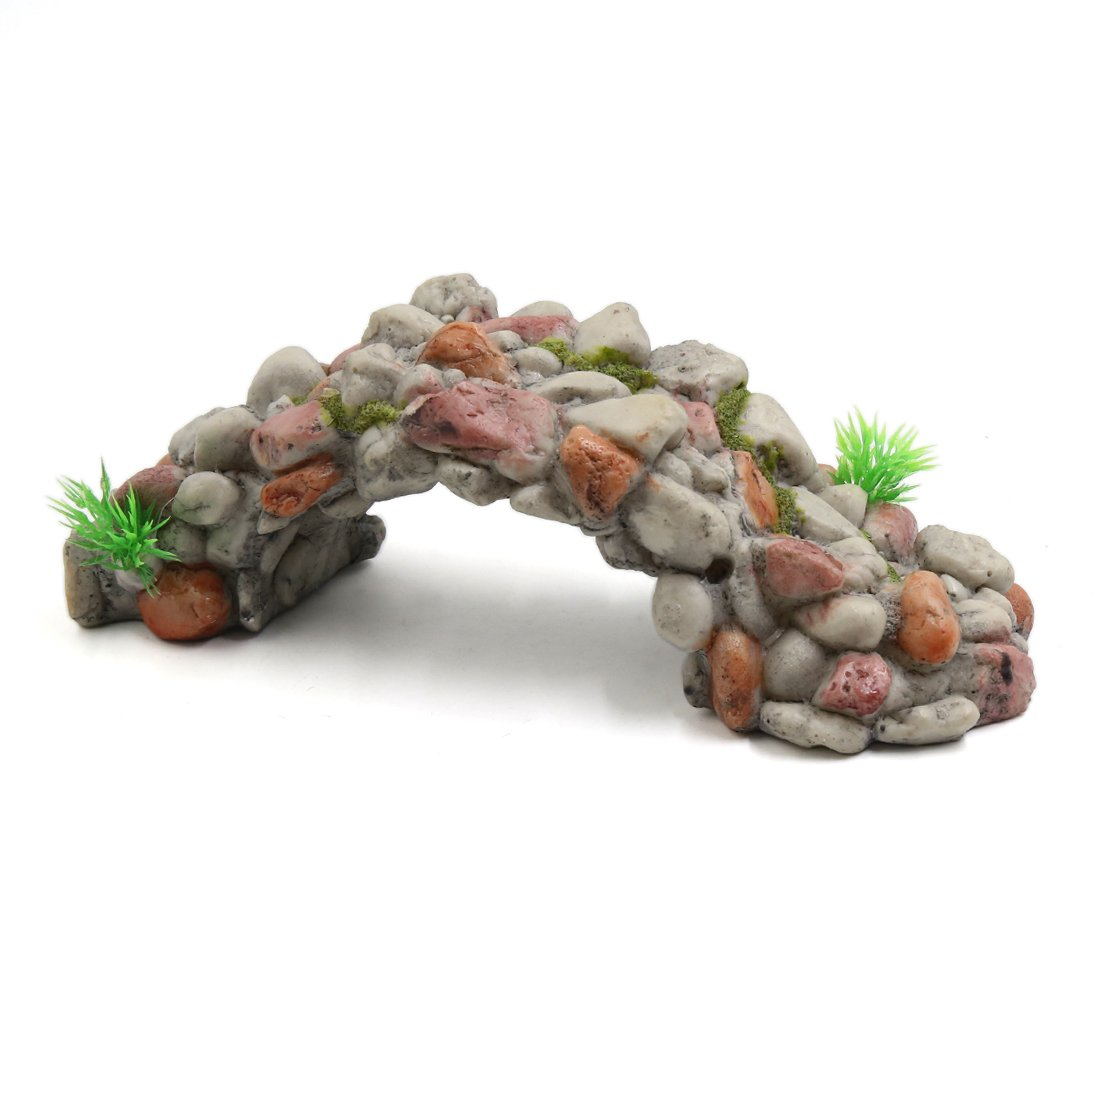 uxcell Resin Stone Bridge Fish Tank Aquarium Landscape Decor Underwater Ornament White